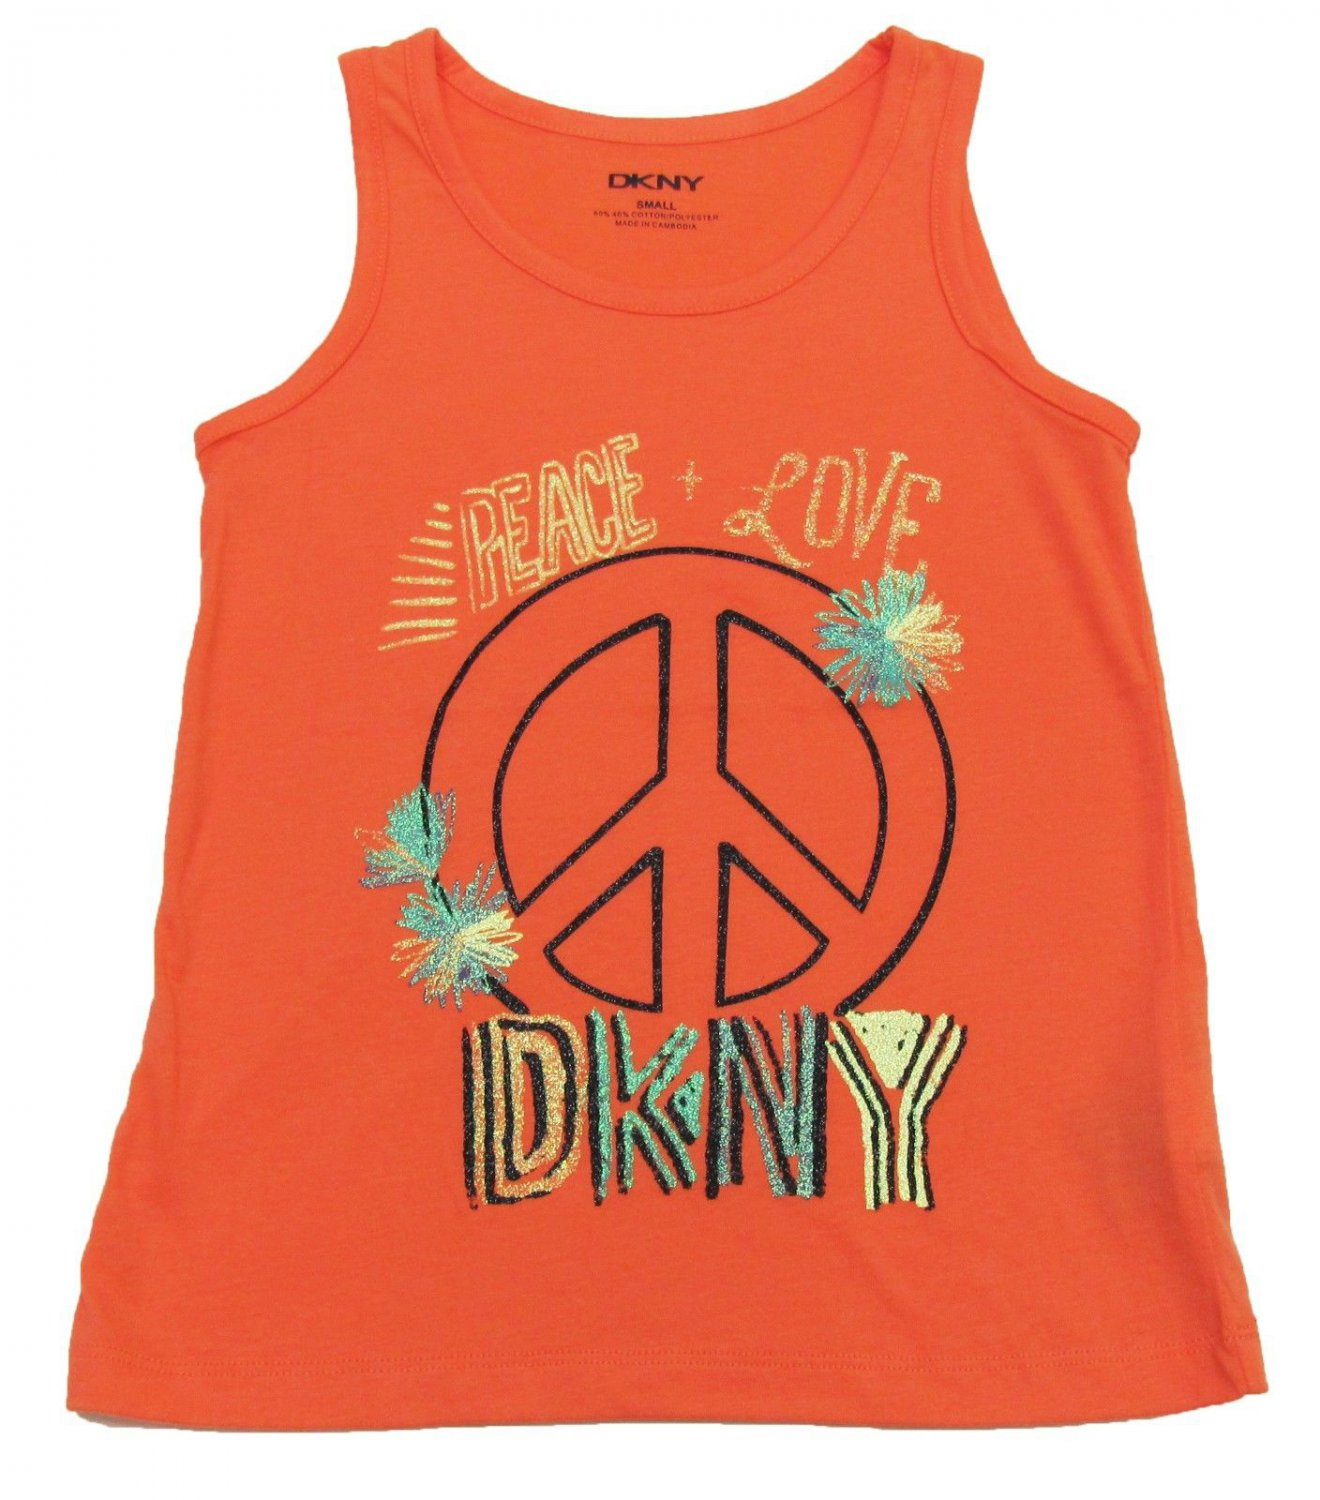 DKNY Girls S Peace and Love Glitter Graphic Tank Top Shirt Sassy Salmon Orange